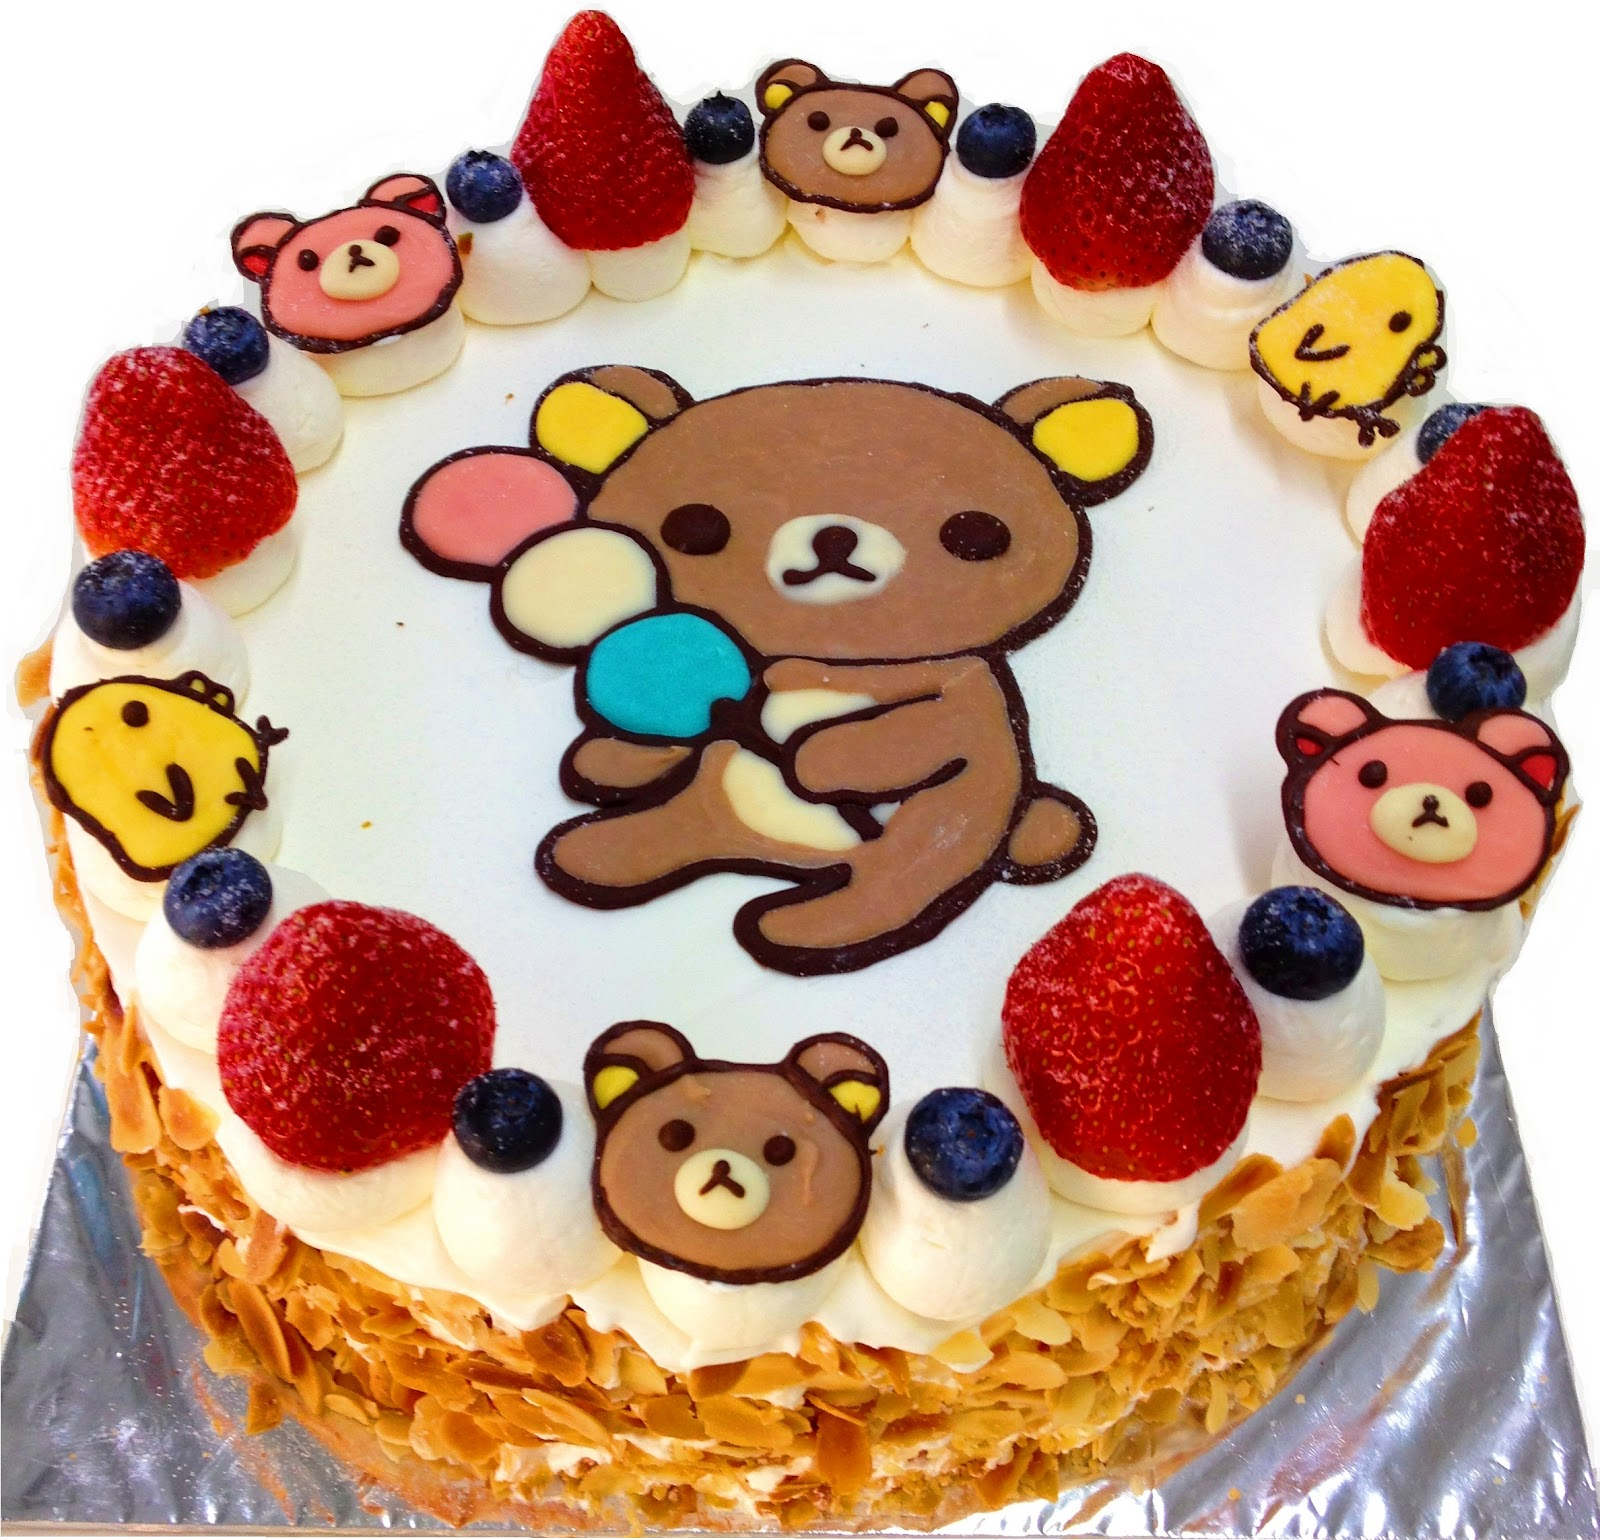 http://4.bp.blogspot.com/-v9lAVxF5F1Q/T4qLPjnQ-yI/AAAAAAAADUk/C7mvrg0PkwA/s1600/Rilakkuma%20Strawberry%20white%20background.jpg